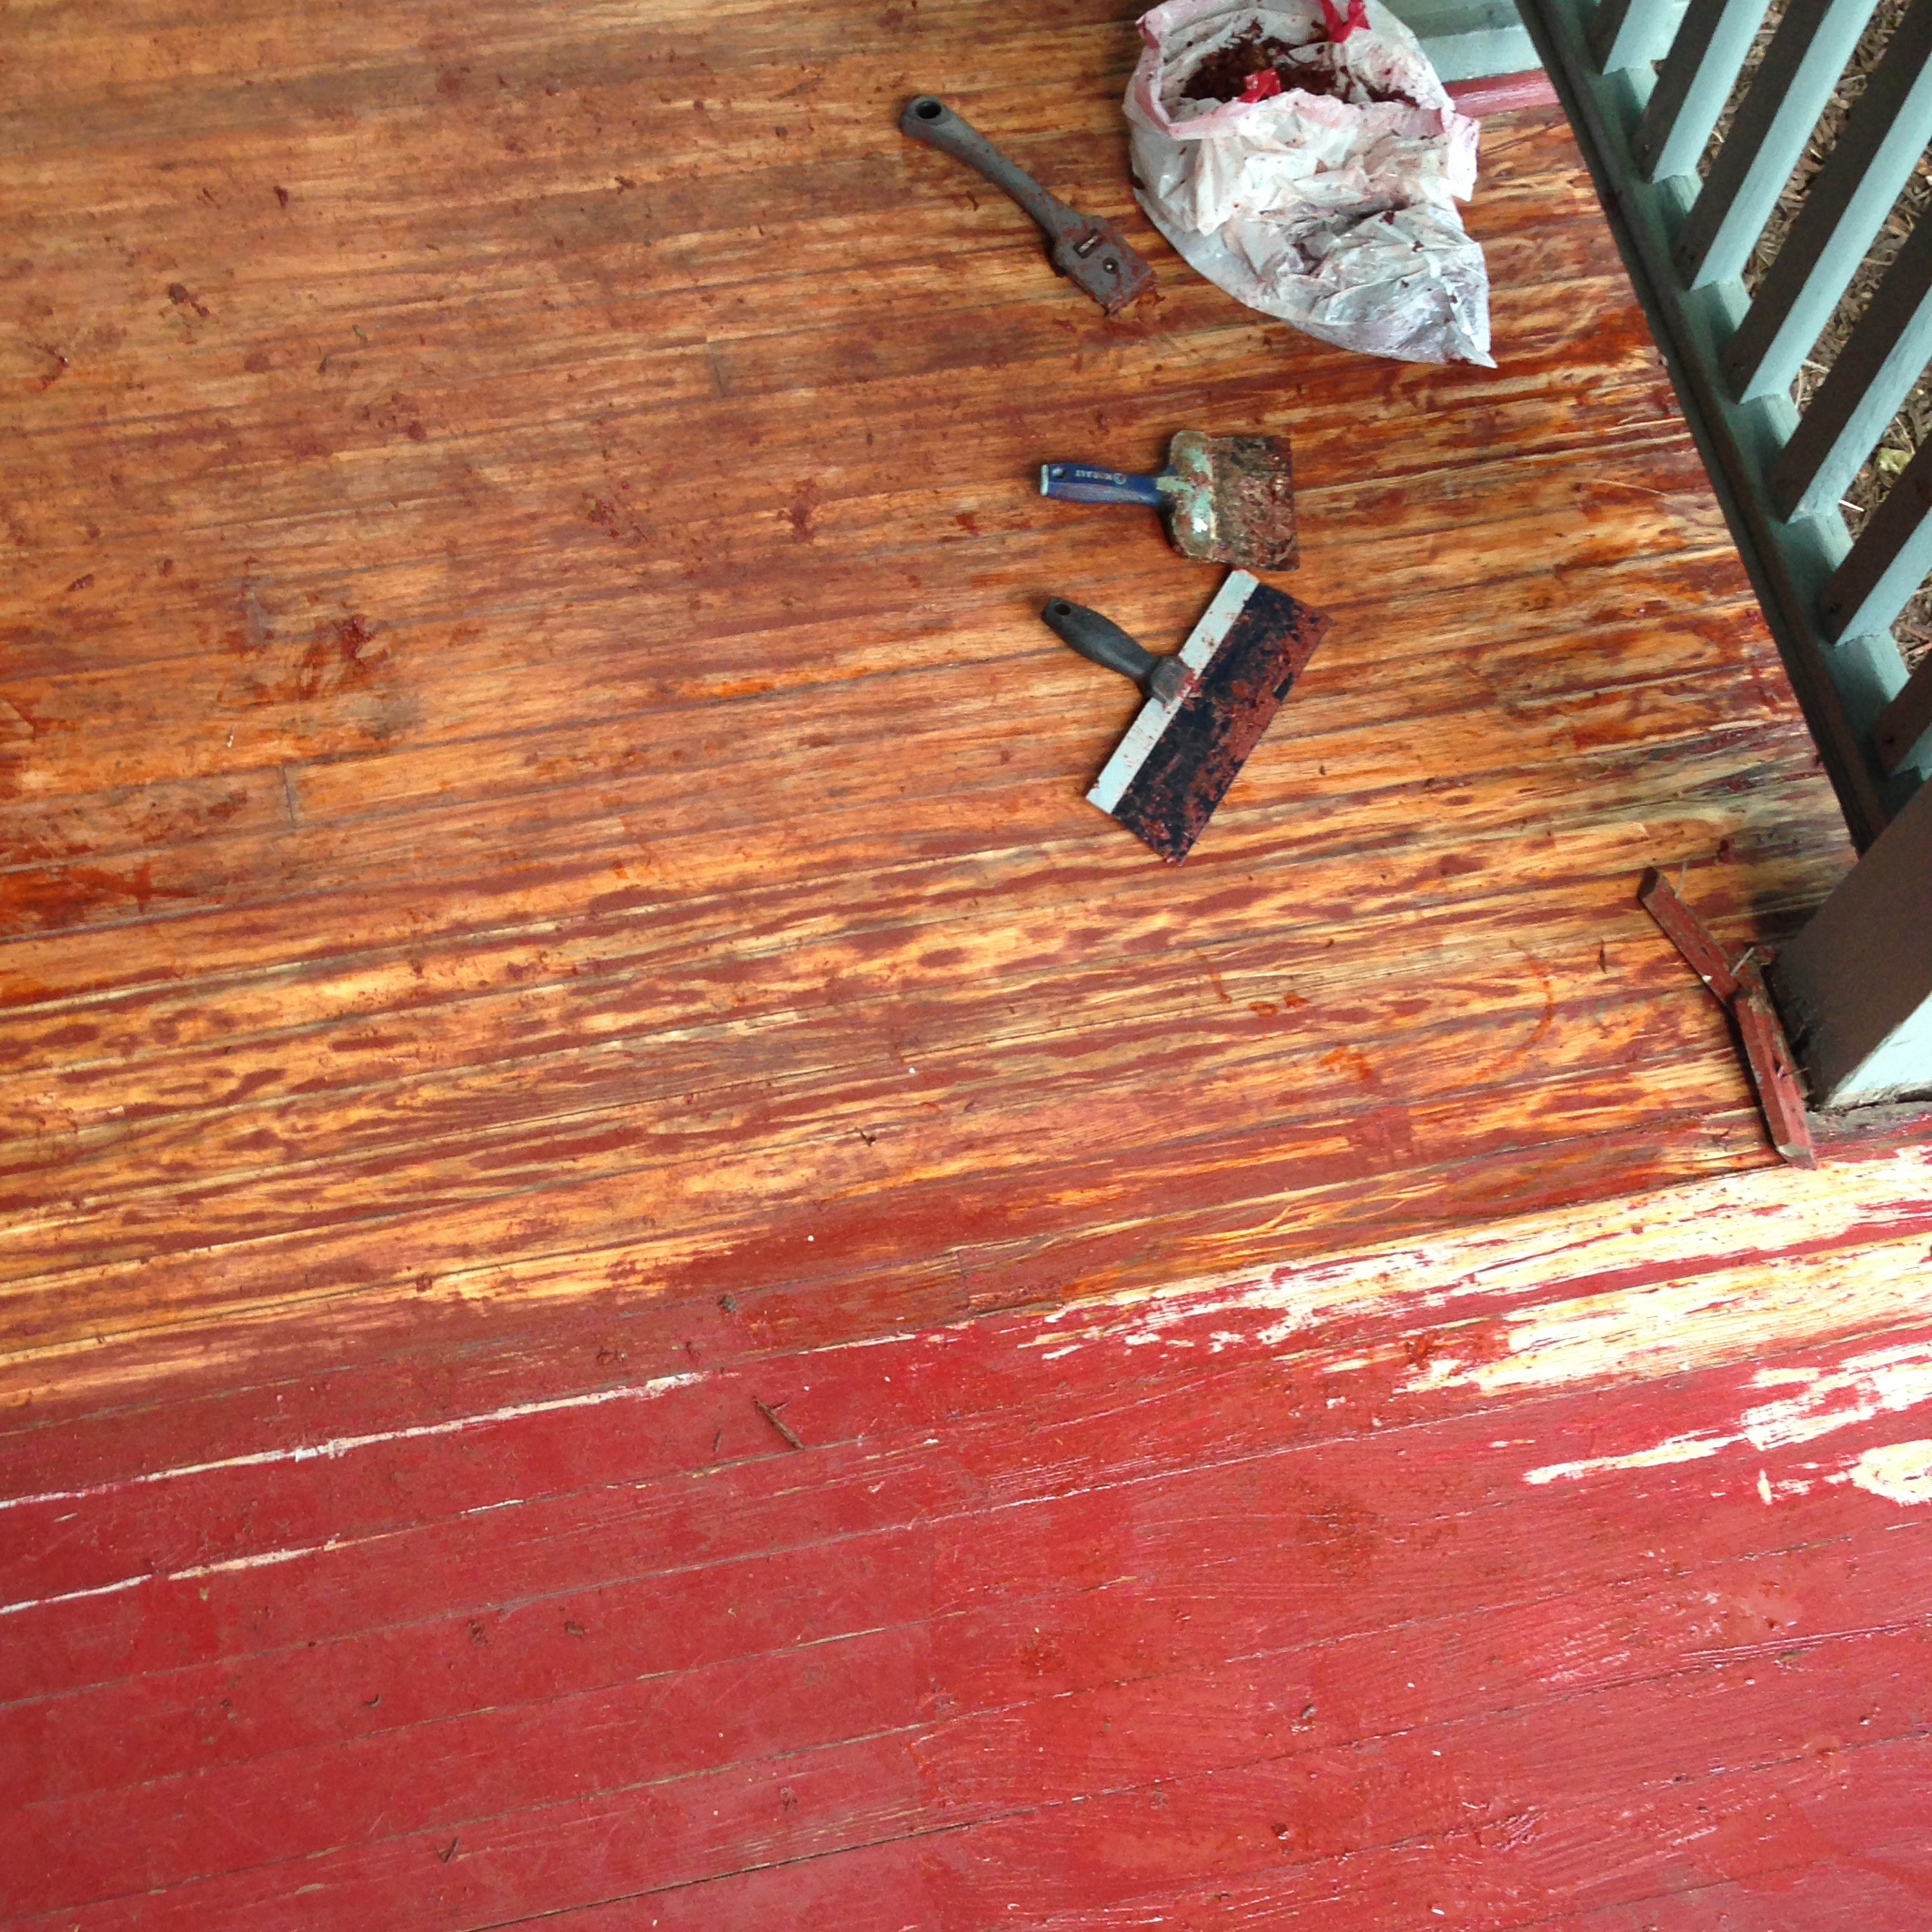 this is where we first realized there are two different types of wood under this bright red paint